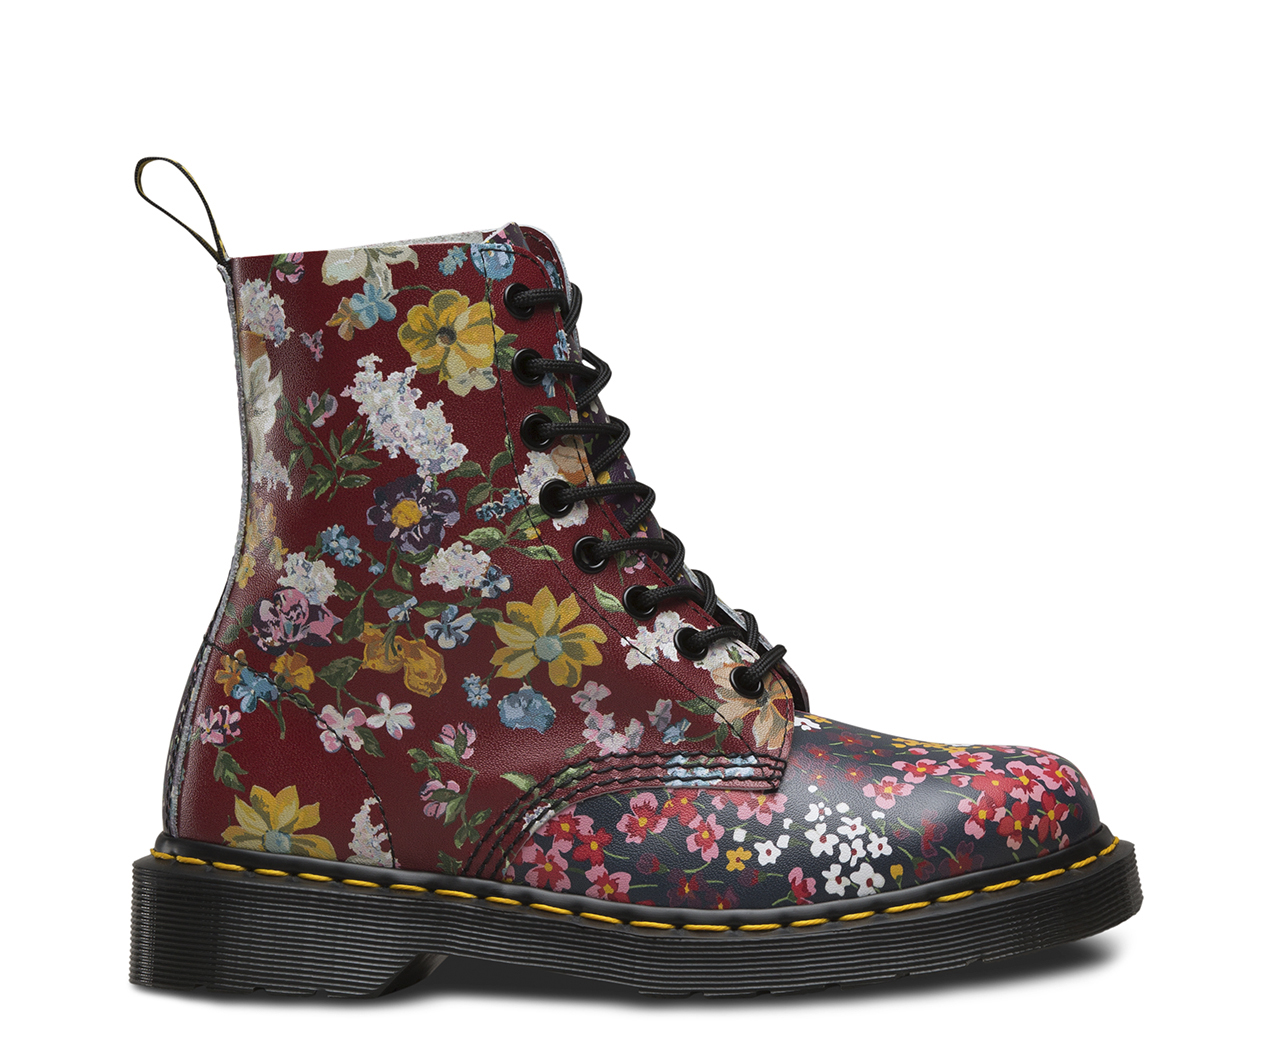 pascal floral clash women 39 s boots shoes official dr martens store uk. Black Bedroom Furniture Sets. Home Design Ideas